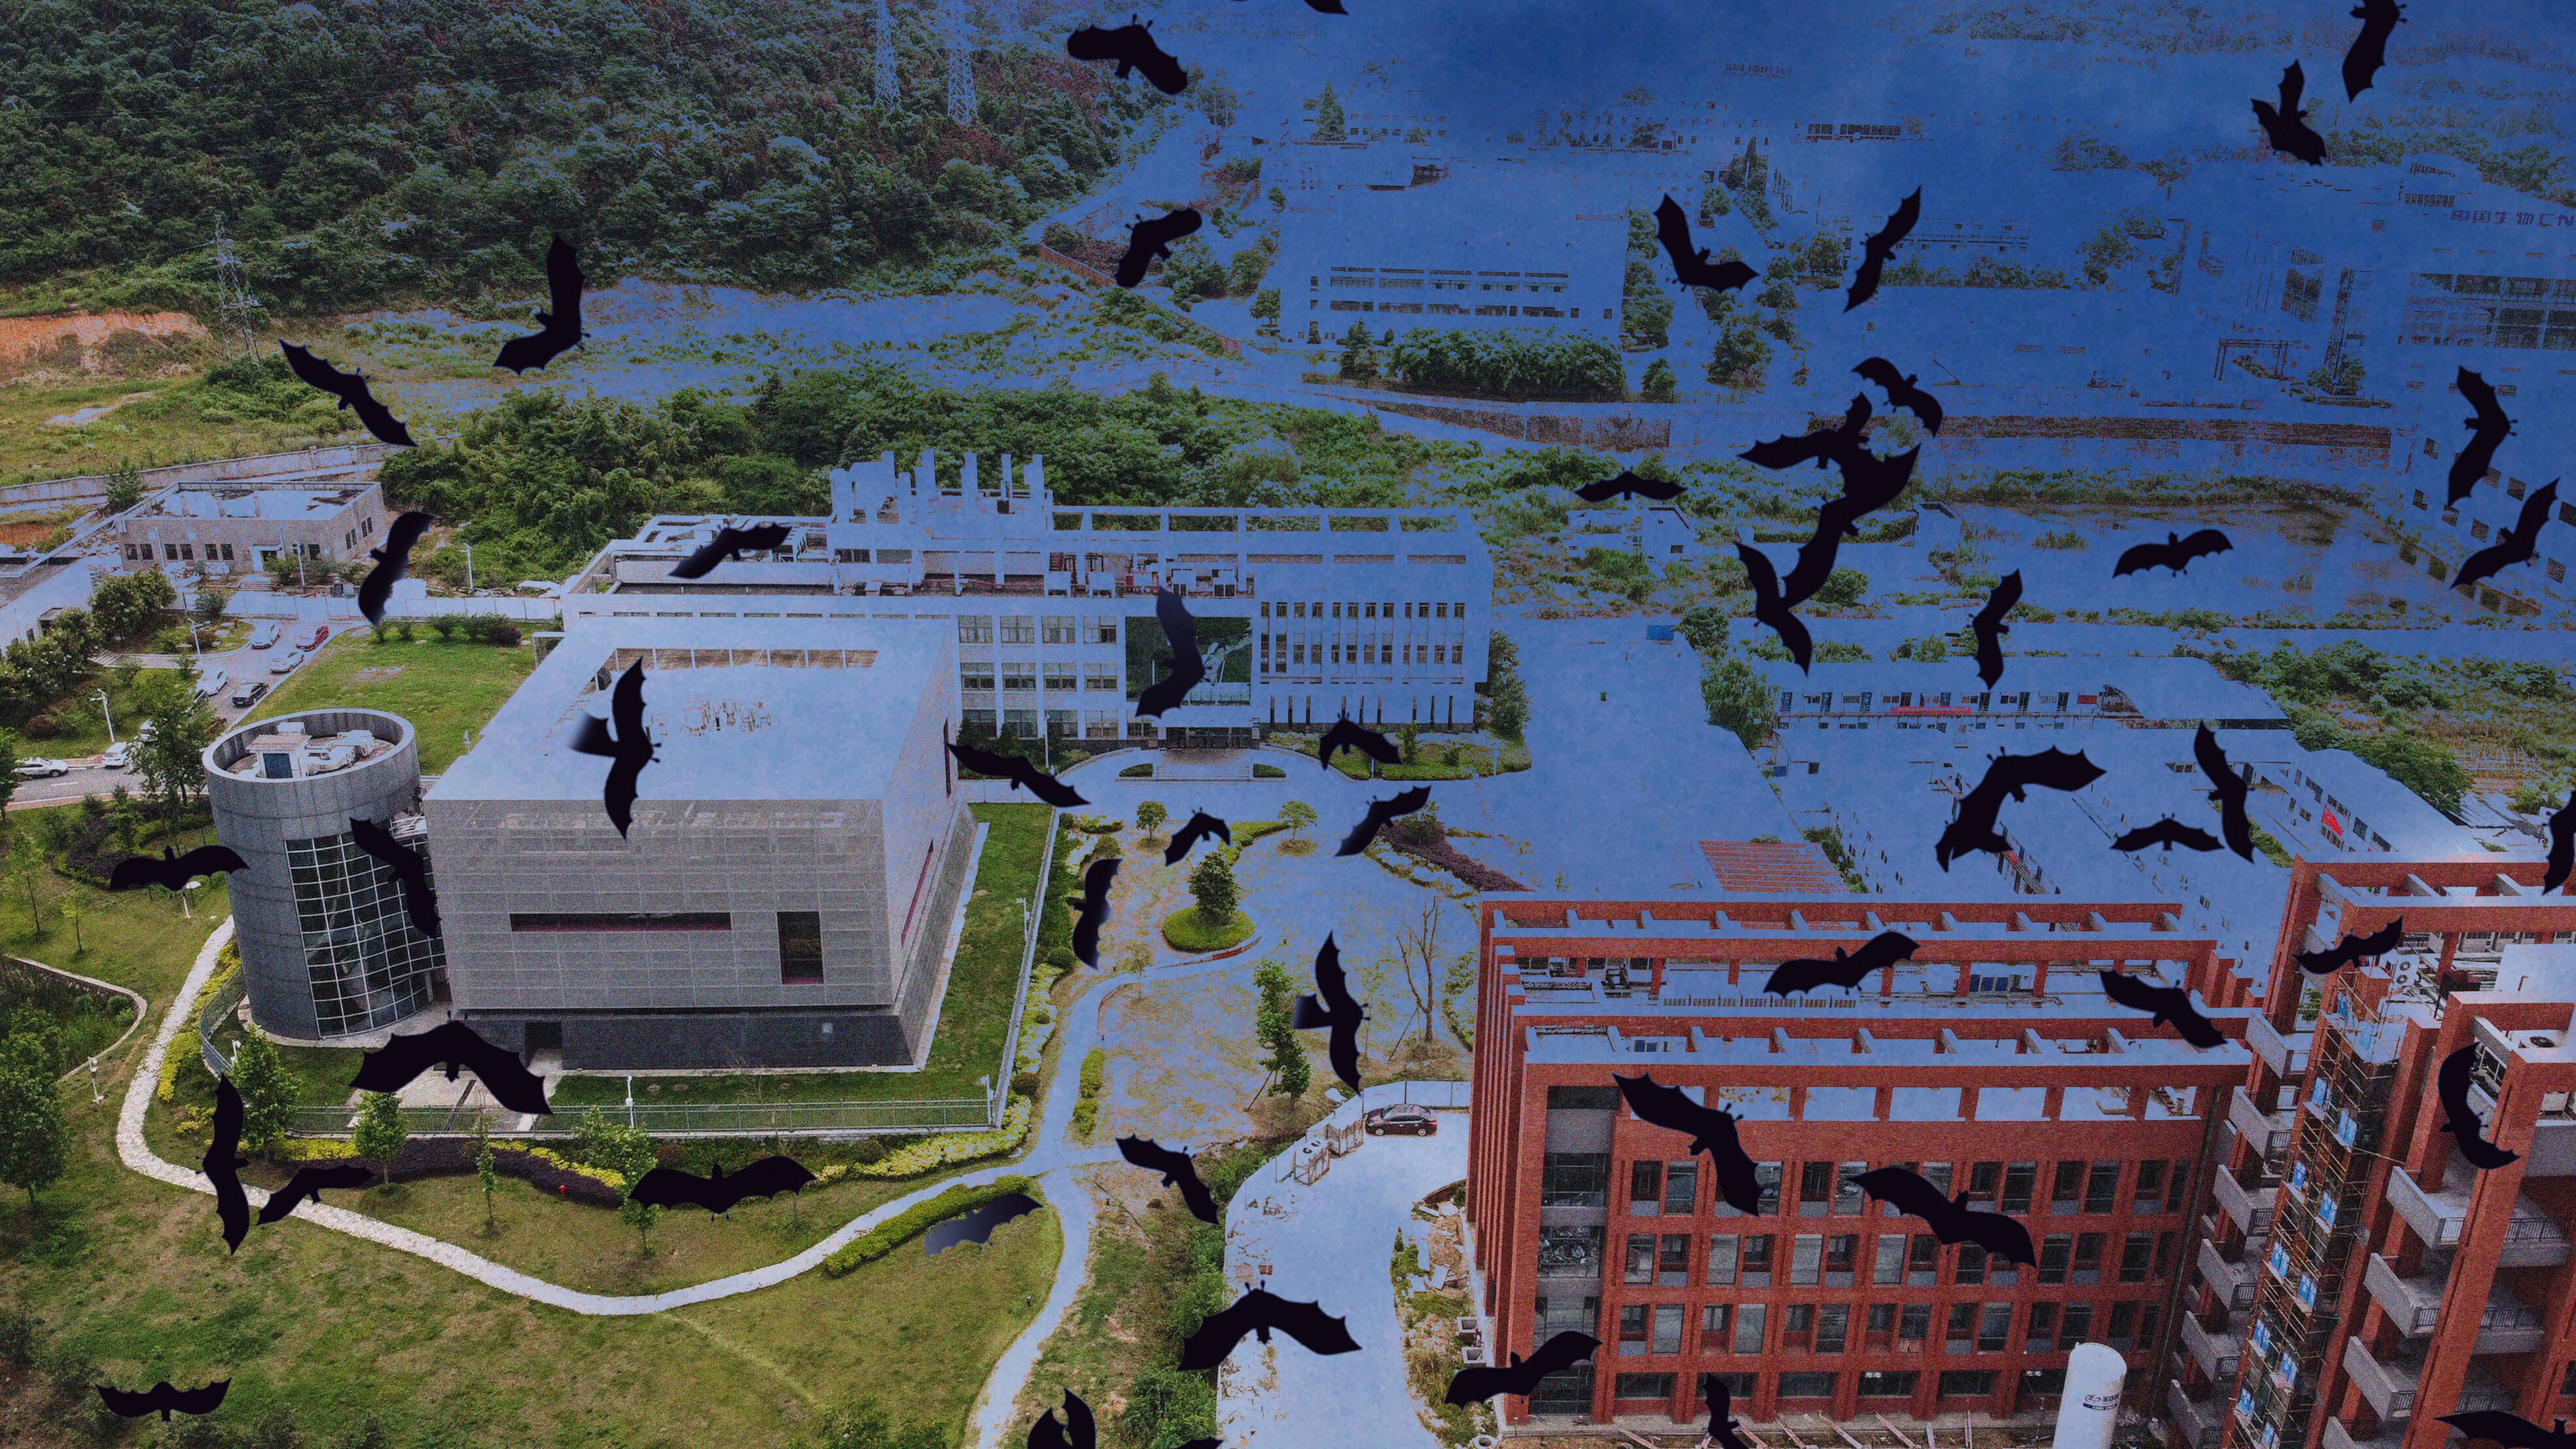 Illustration showing the Wuhan Institute of Virology and bats flying above